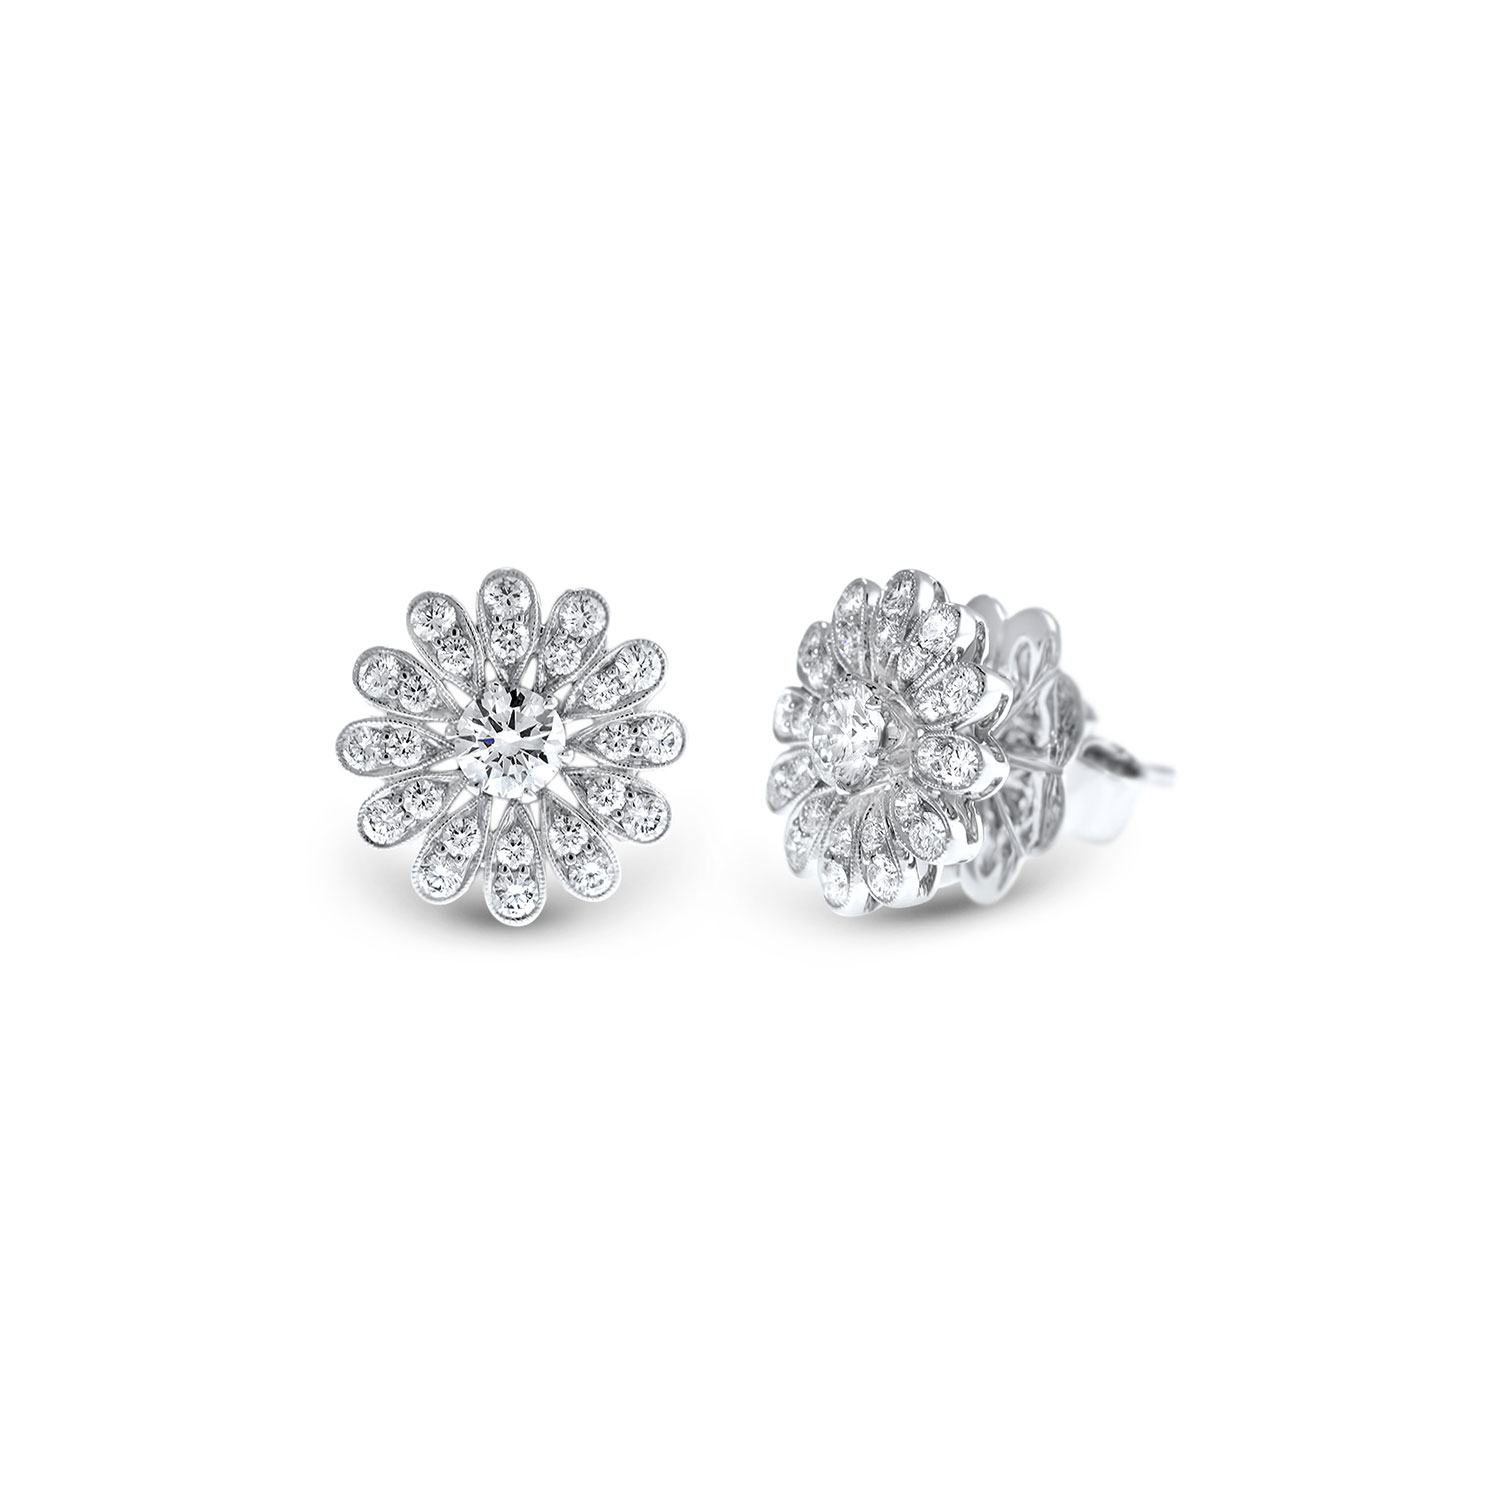 Vintage flower diamond stud earrings in white gold Fairfax & Roberts